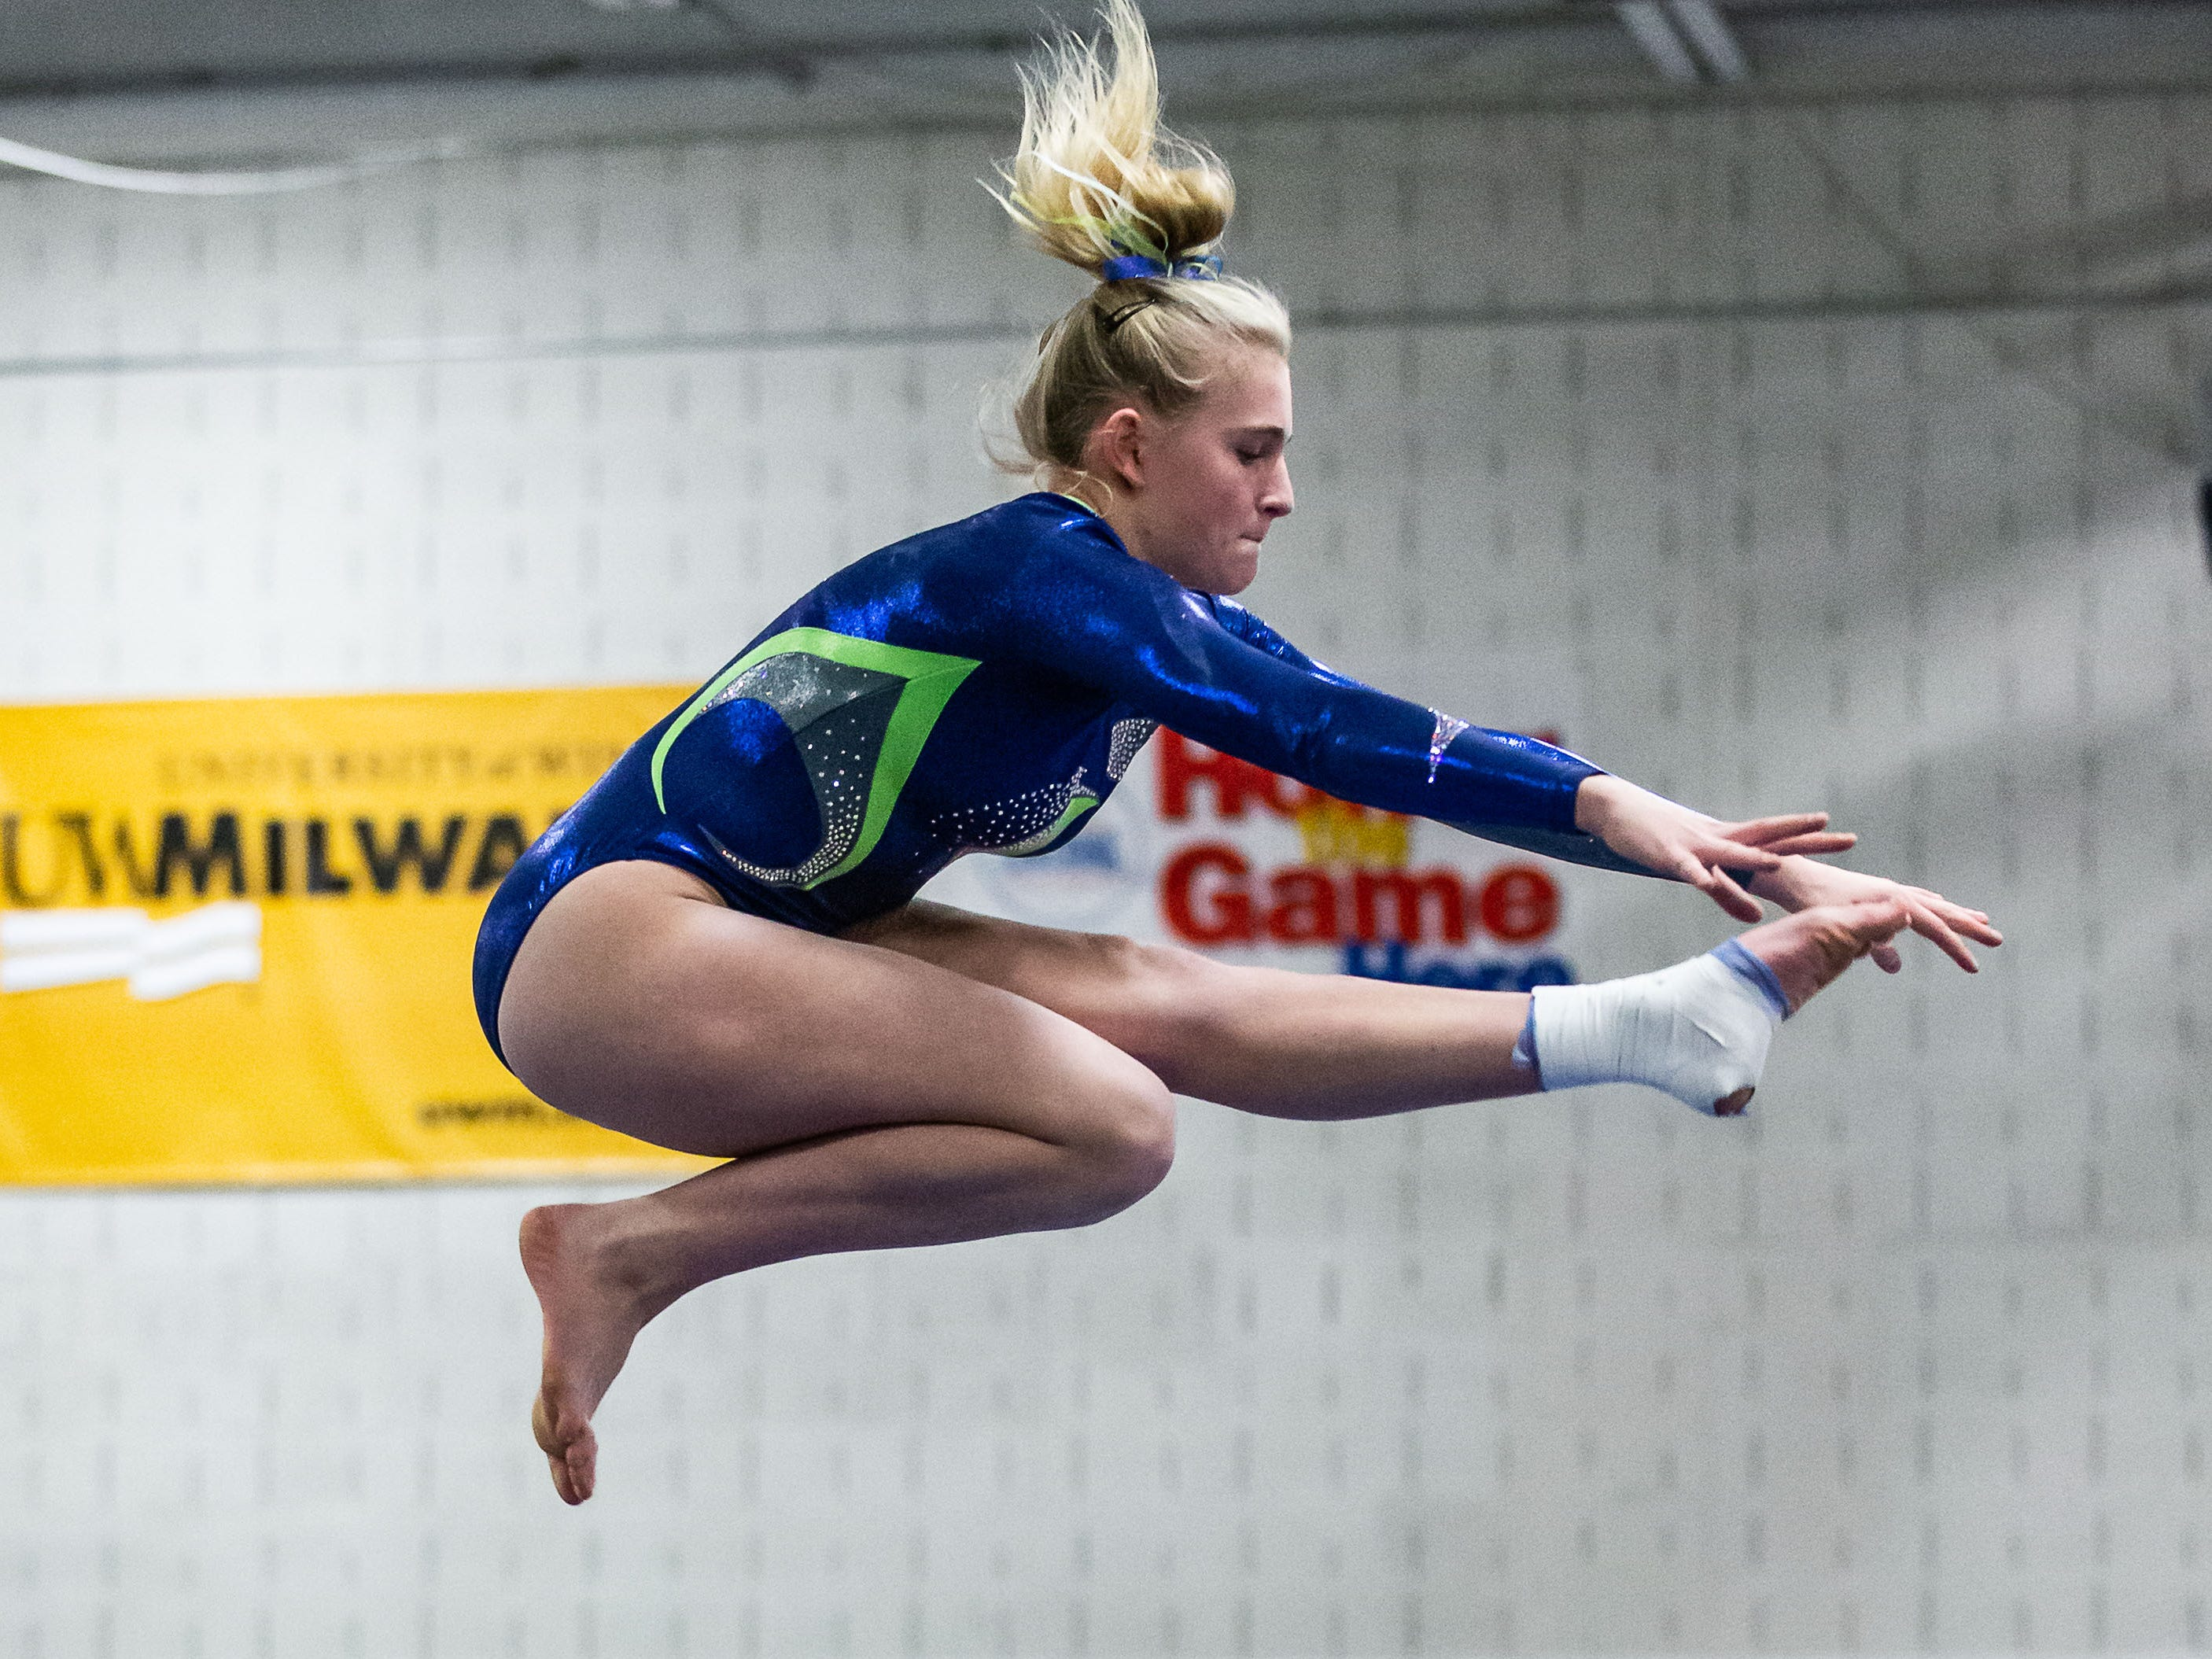 Whitefish Bay gymnast Anneh Britz competes on the beam during the meet at Nicolet on Thursday, Jan. 3, 2019.